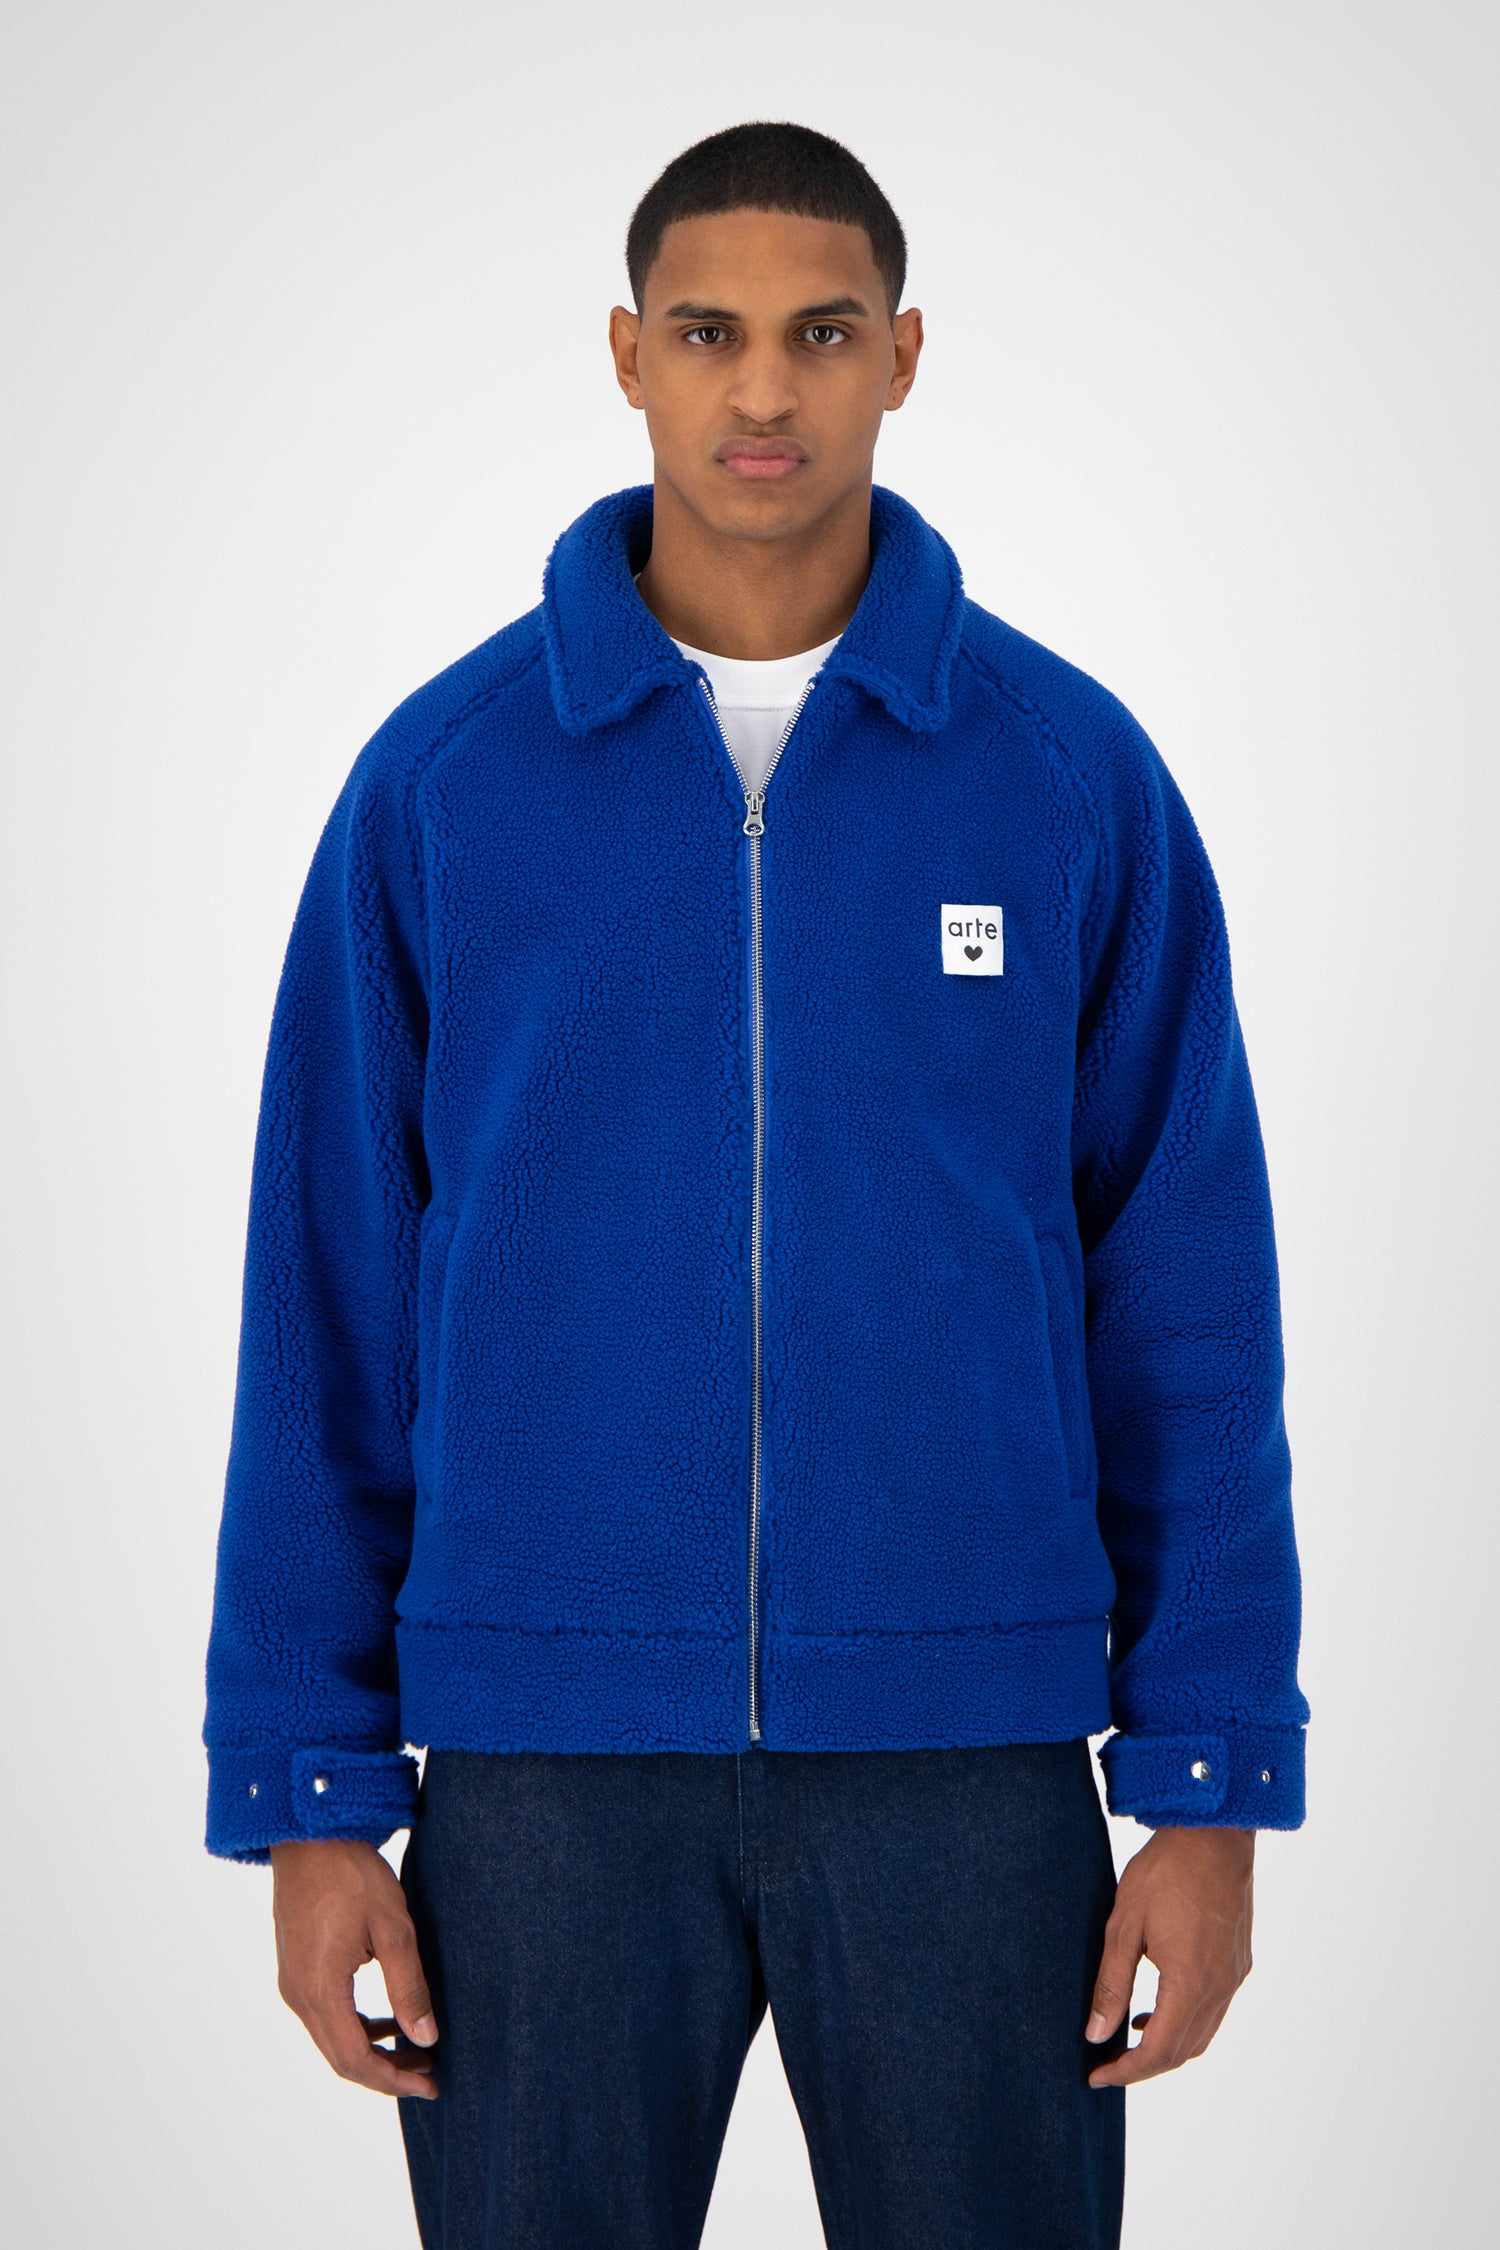 Jake Sherpa Jacket - Royal Blue